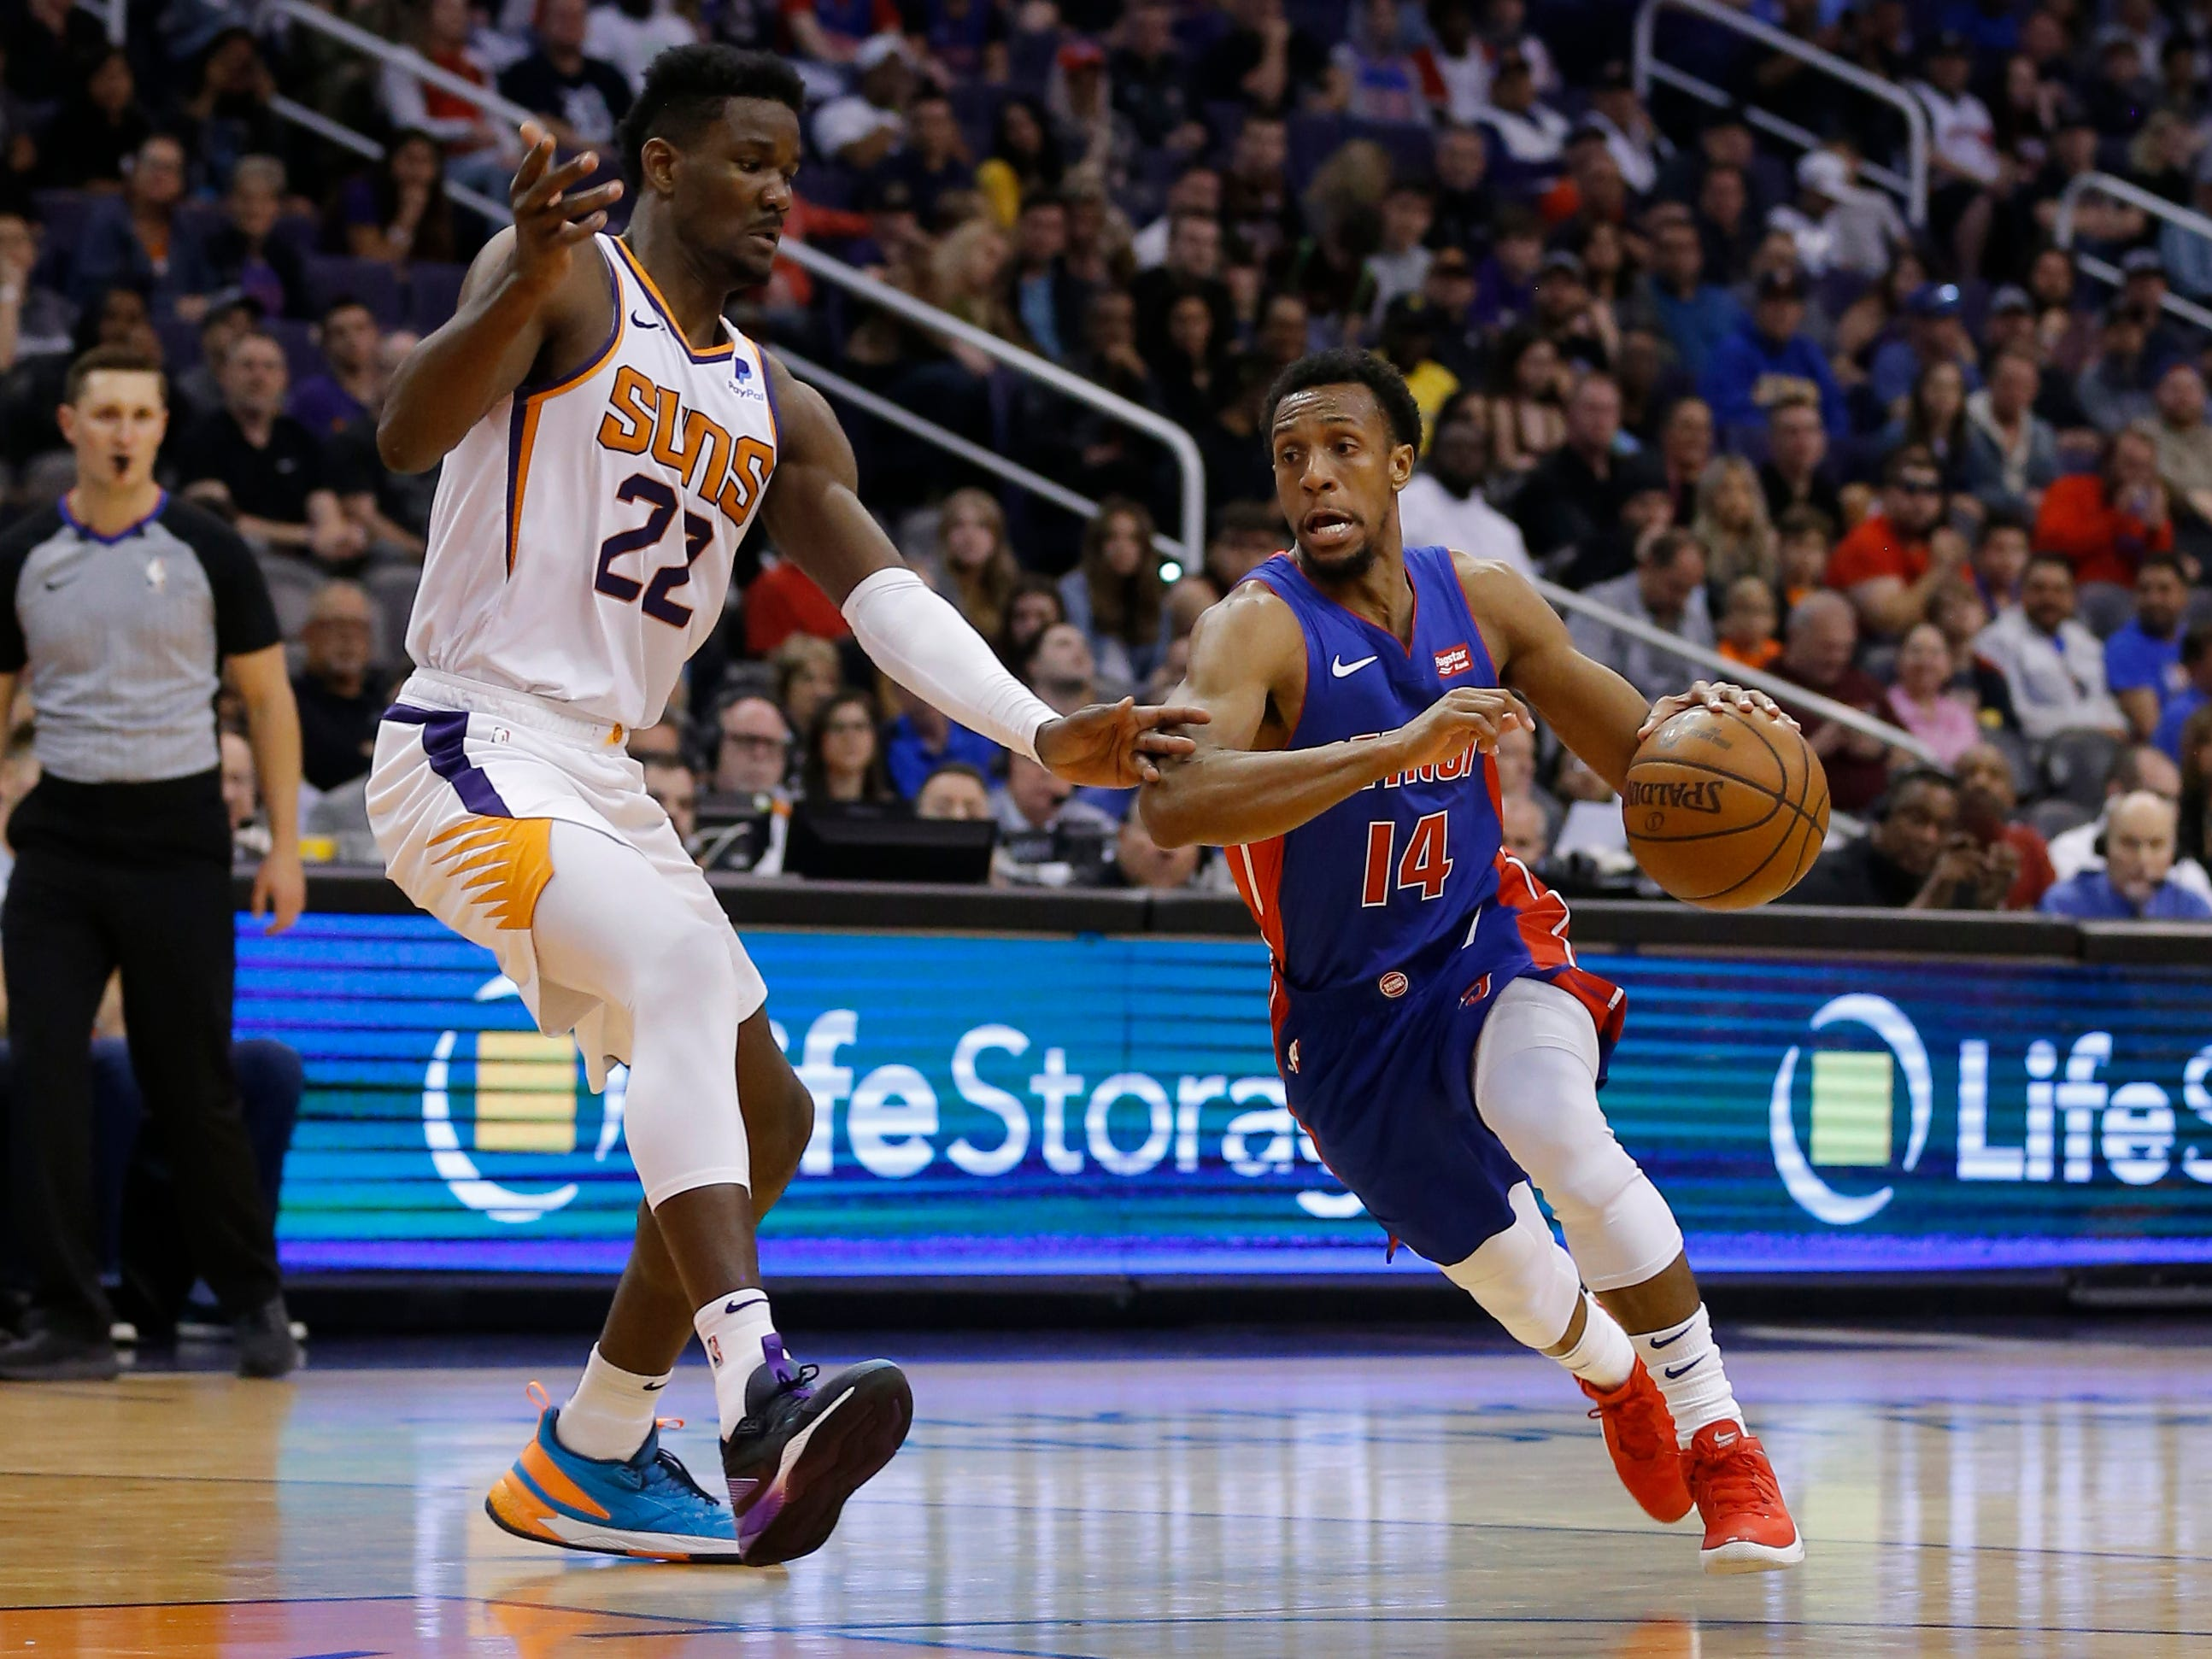 Mar 21, 2019; Phoenix, AZ, USA; Detroit Pistons guard Ish Smith (14) drives past Phoenix Suns center Deandre Ayton (22) in the second half during an NBA basketball game at Talking Stick Resort Arena.